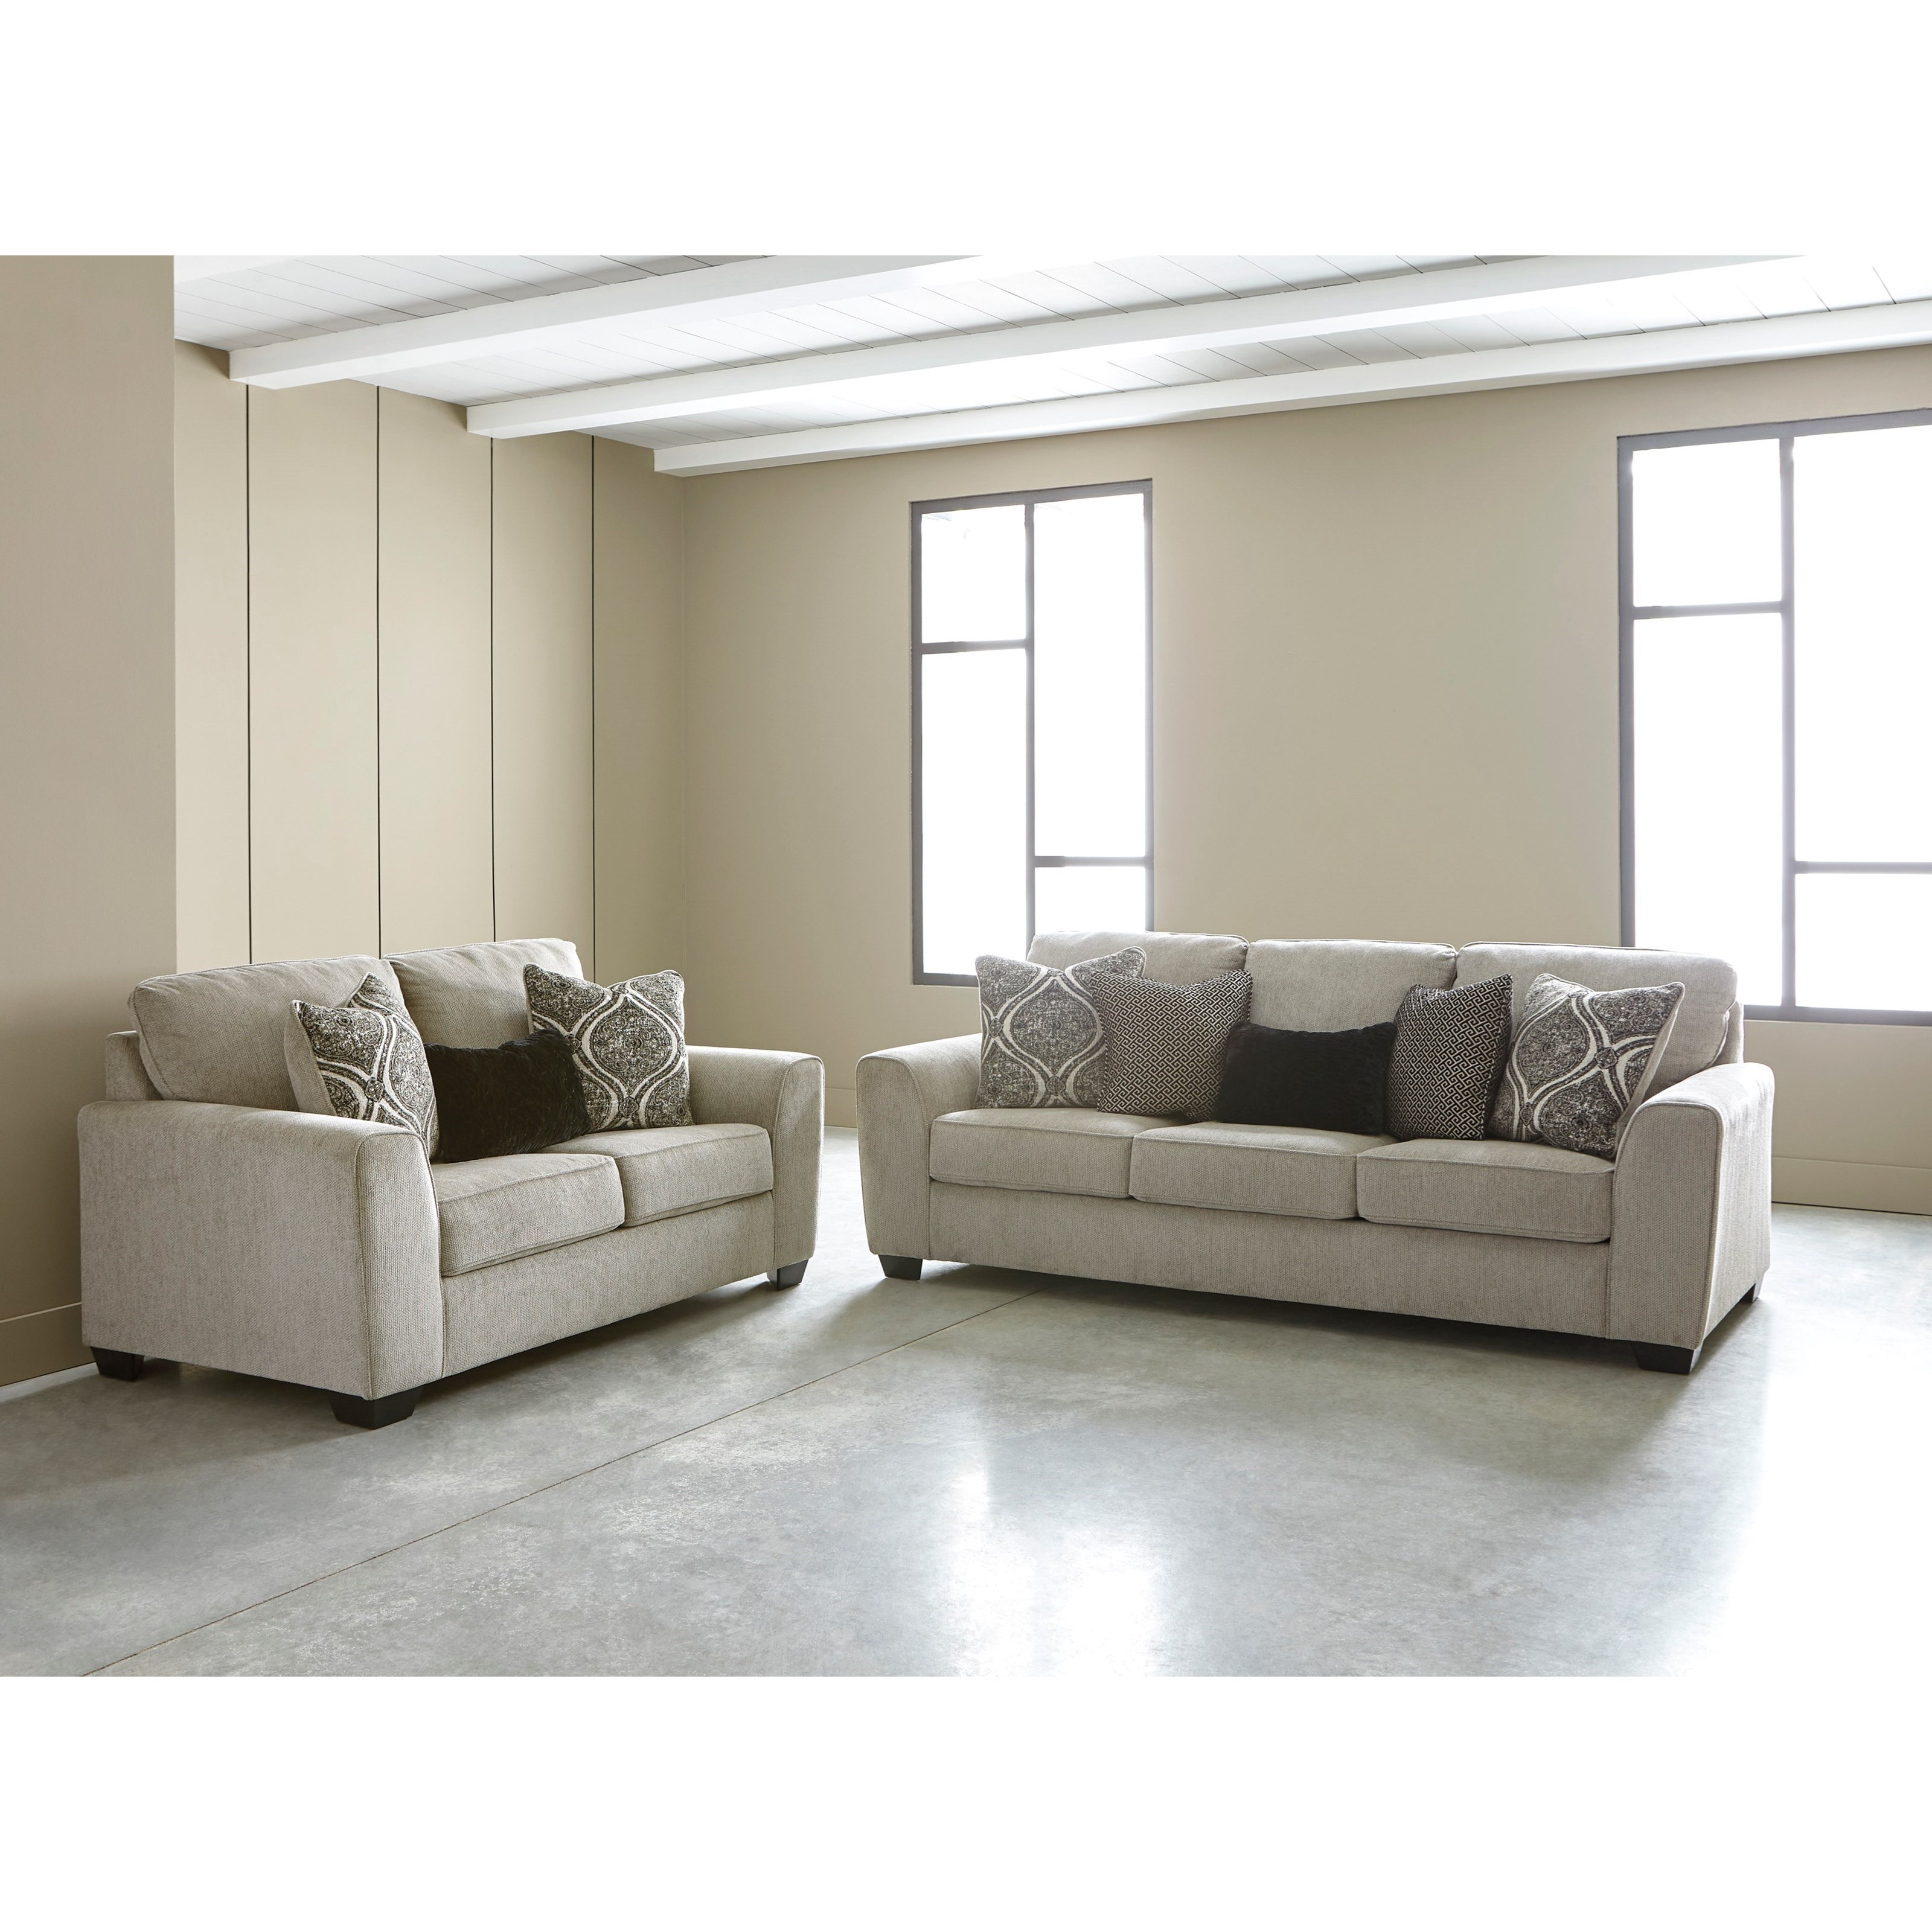 Astonishing Benchcraft Gavril Contemporary Queen Sofa Sleeper With Uwap Interior Chair Design Uwaporg